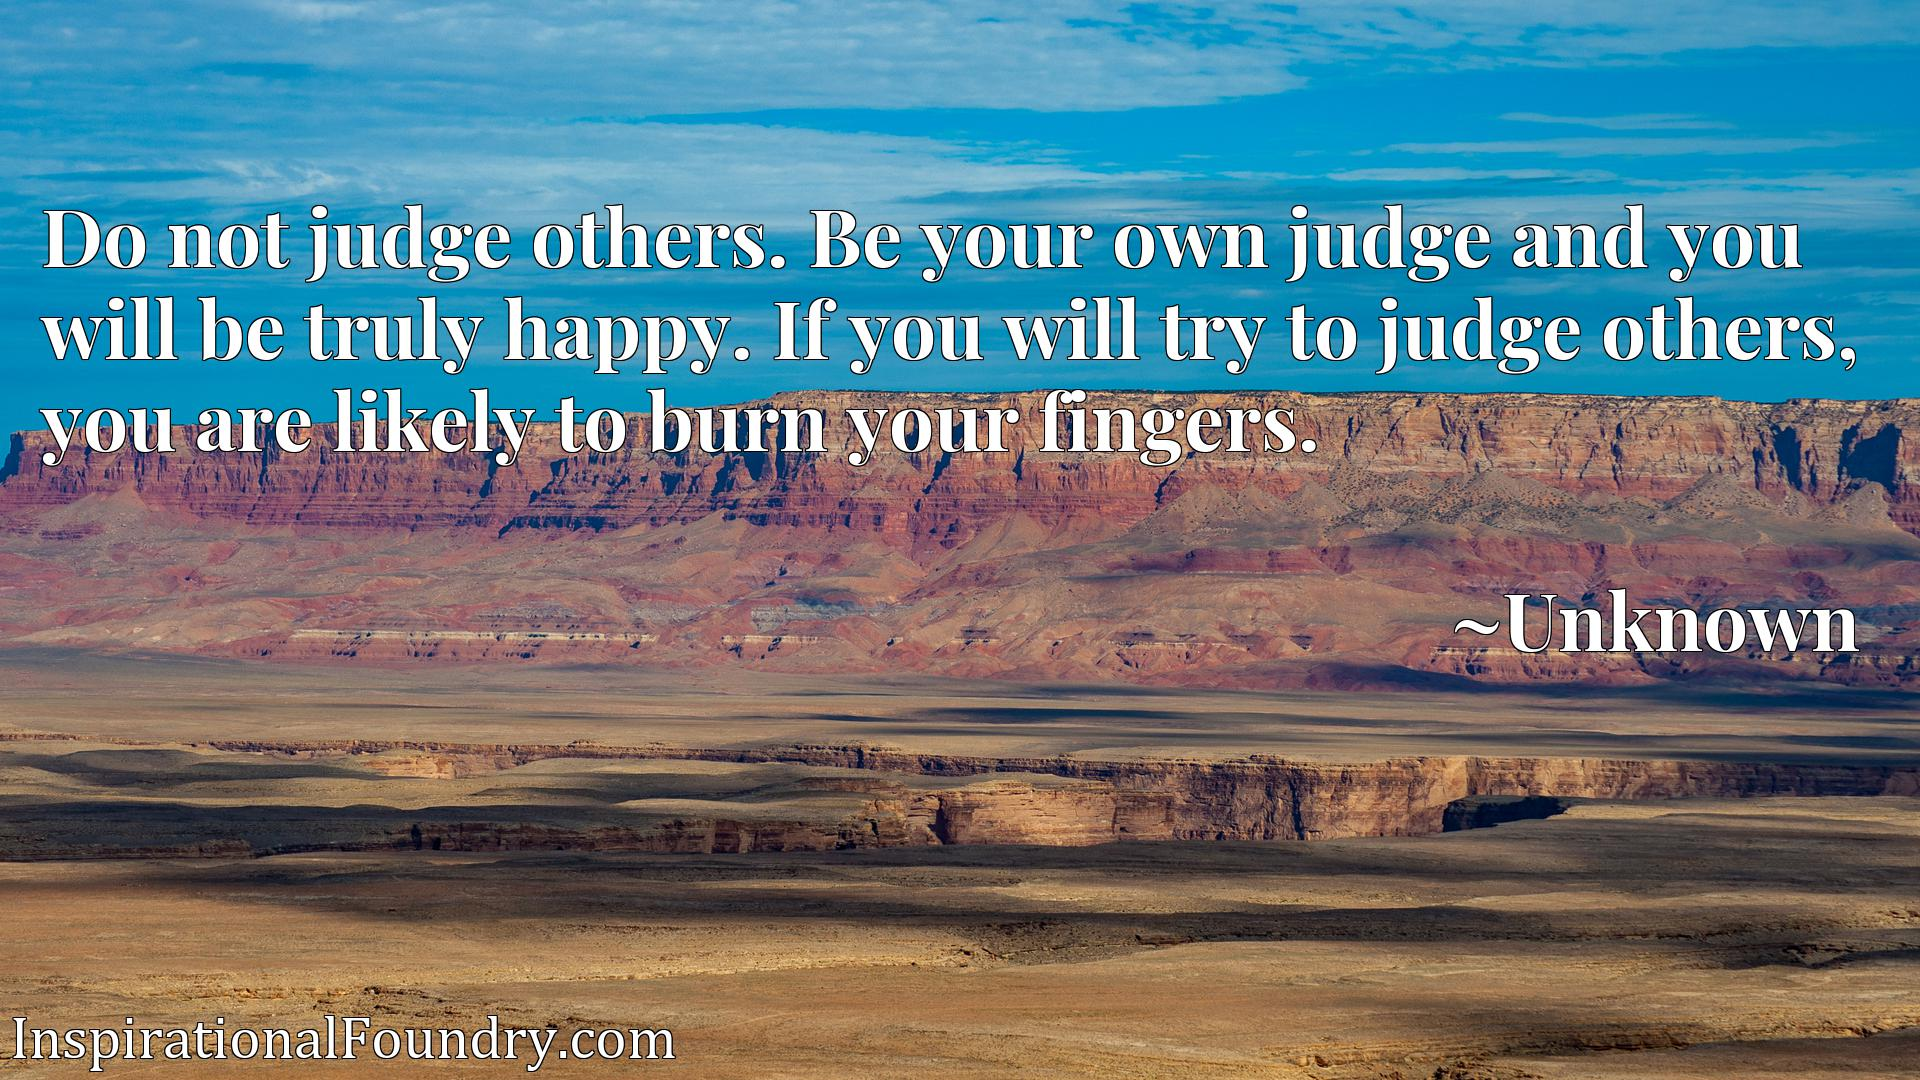 Do not judge others. Be your own judge and you will be truly happy. If you will try to judge others, you are likely to burn your fingers.